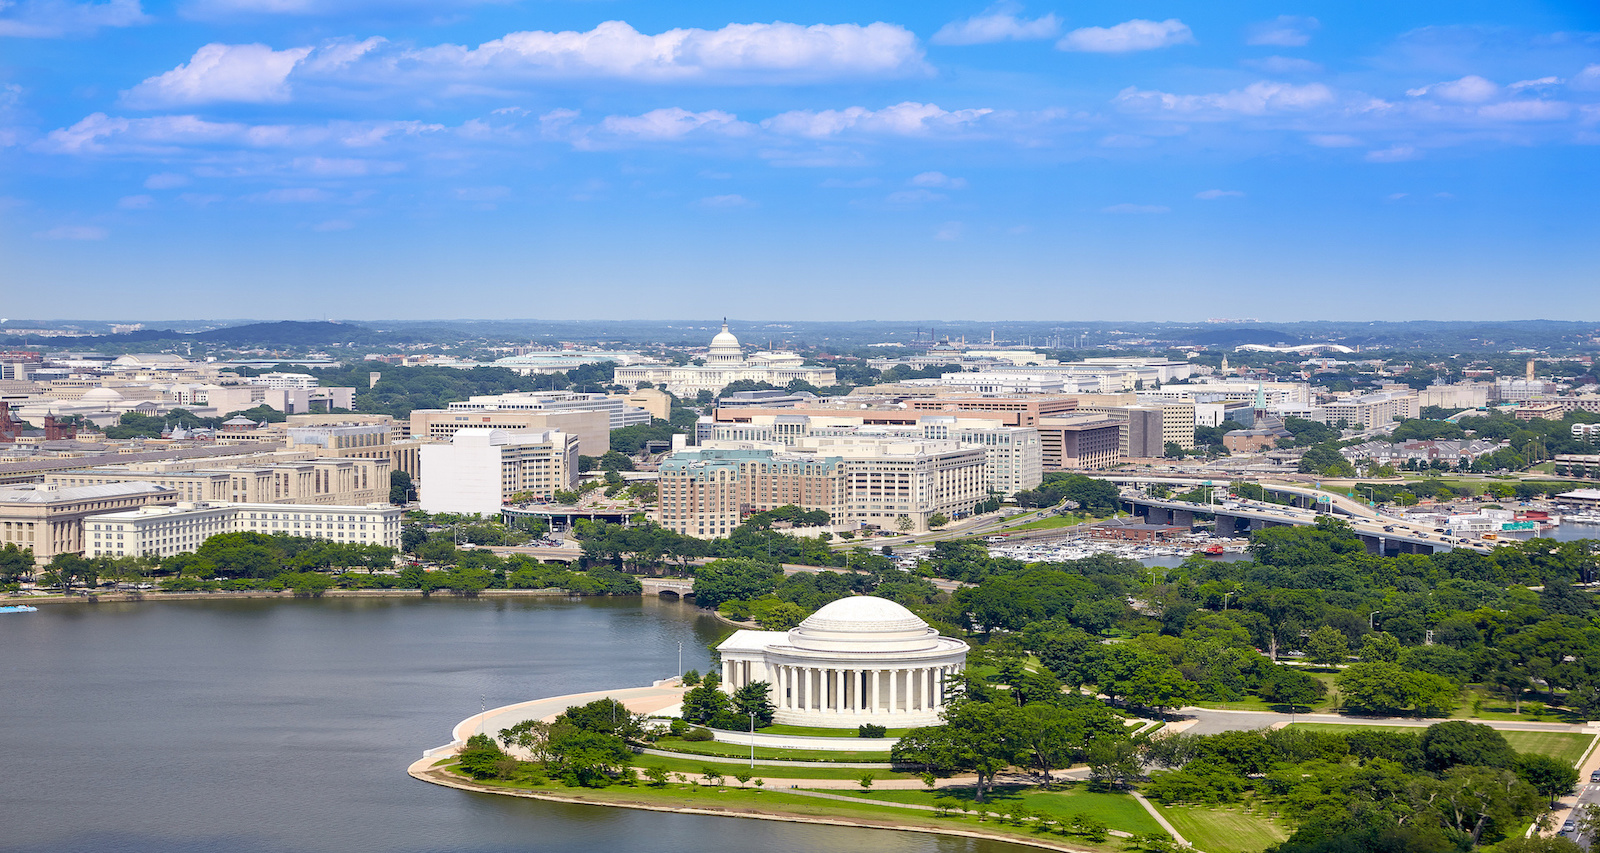 Washington DC aerial view with Thomas Jefferson Memorial building